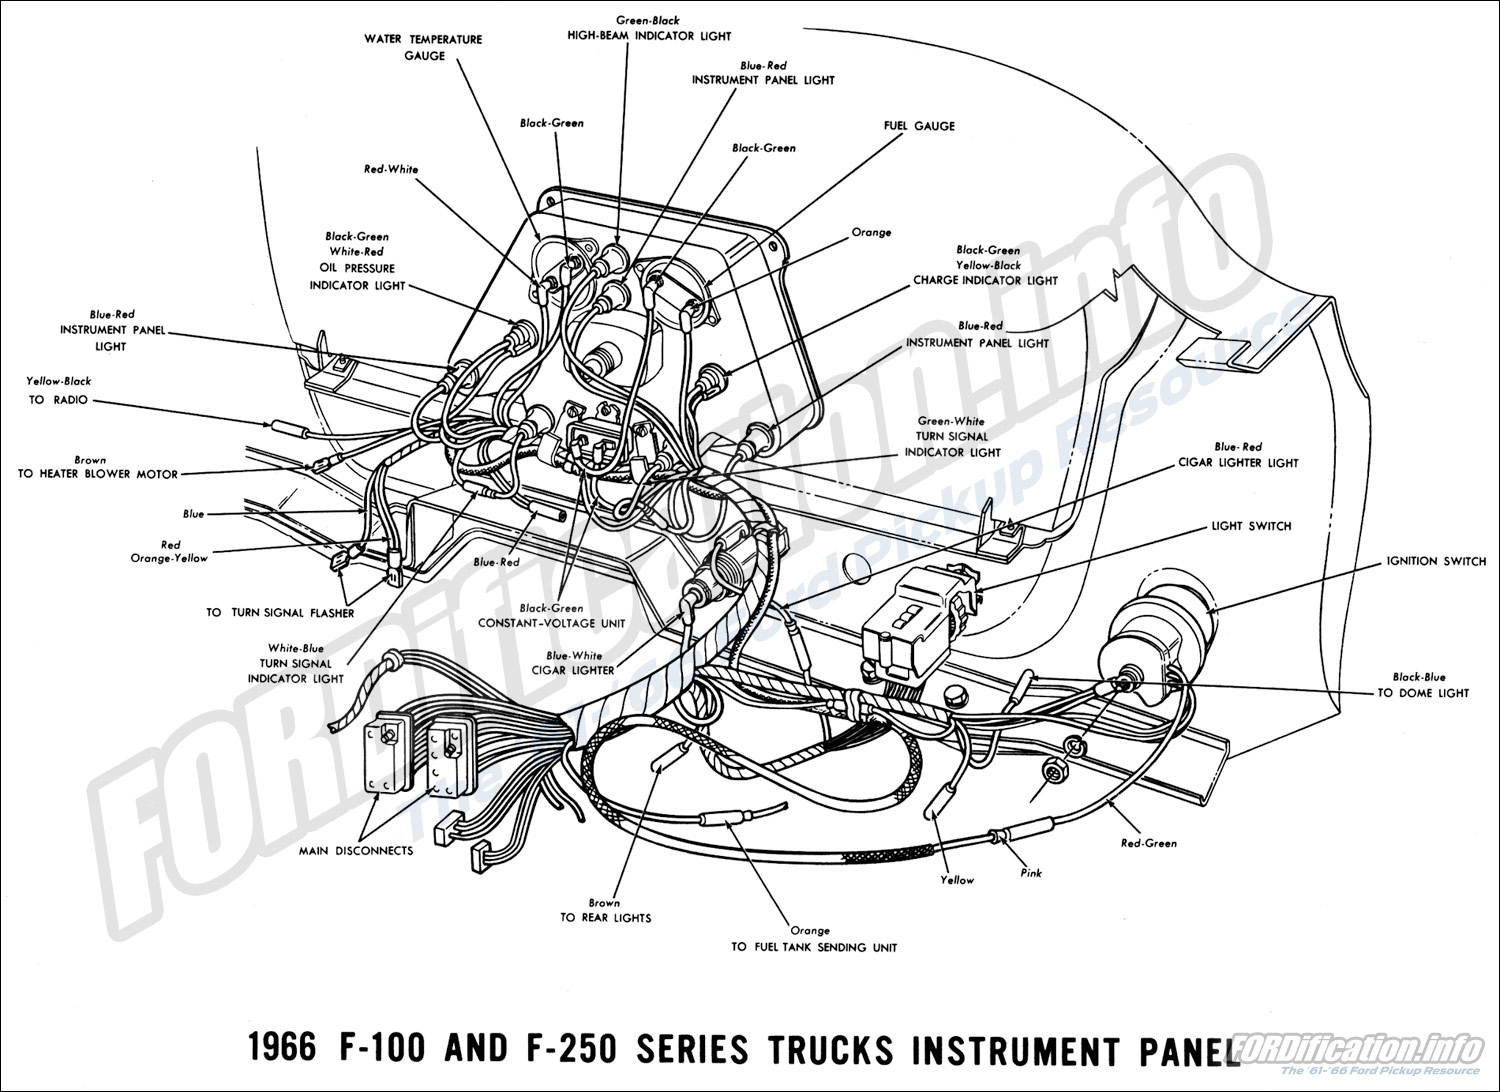 66 Ford Truck Wiring Diagram Diy Enthusiasts Diagrams 1973 1966 Fordification Info The 61 Rh